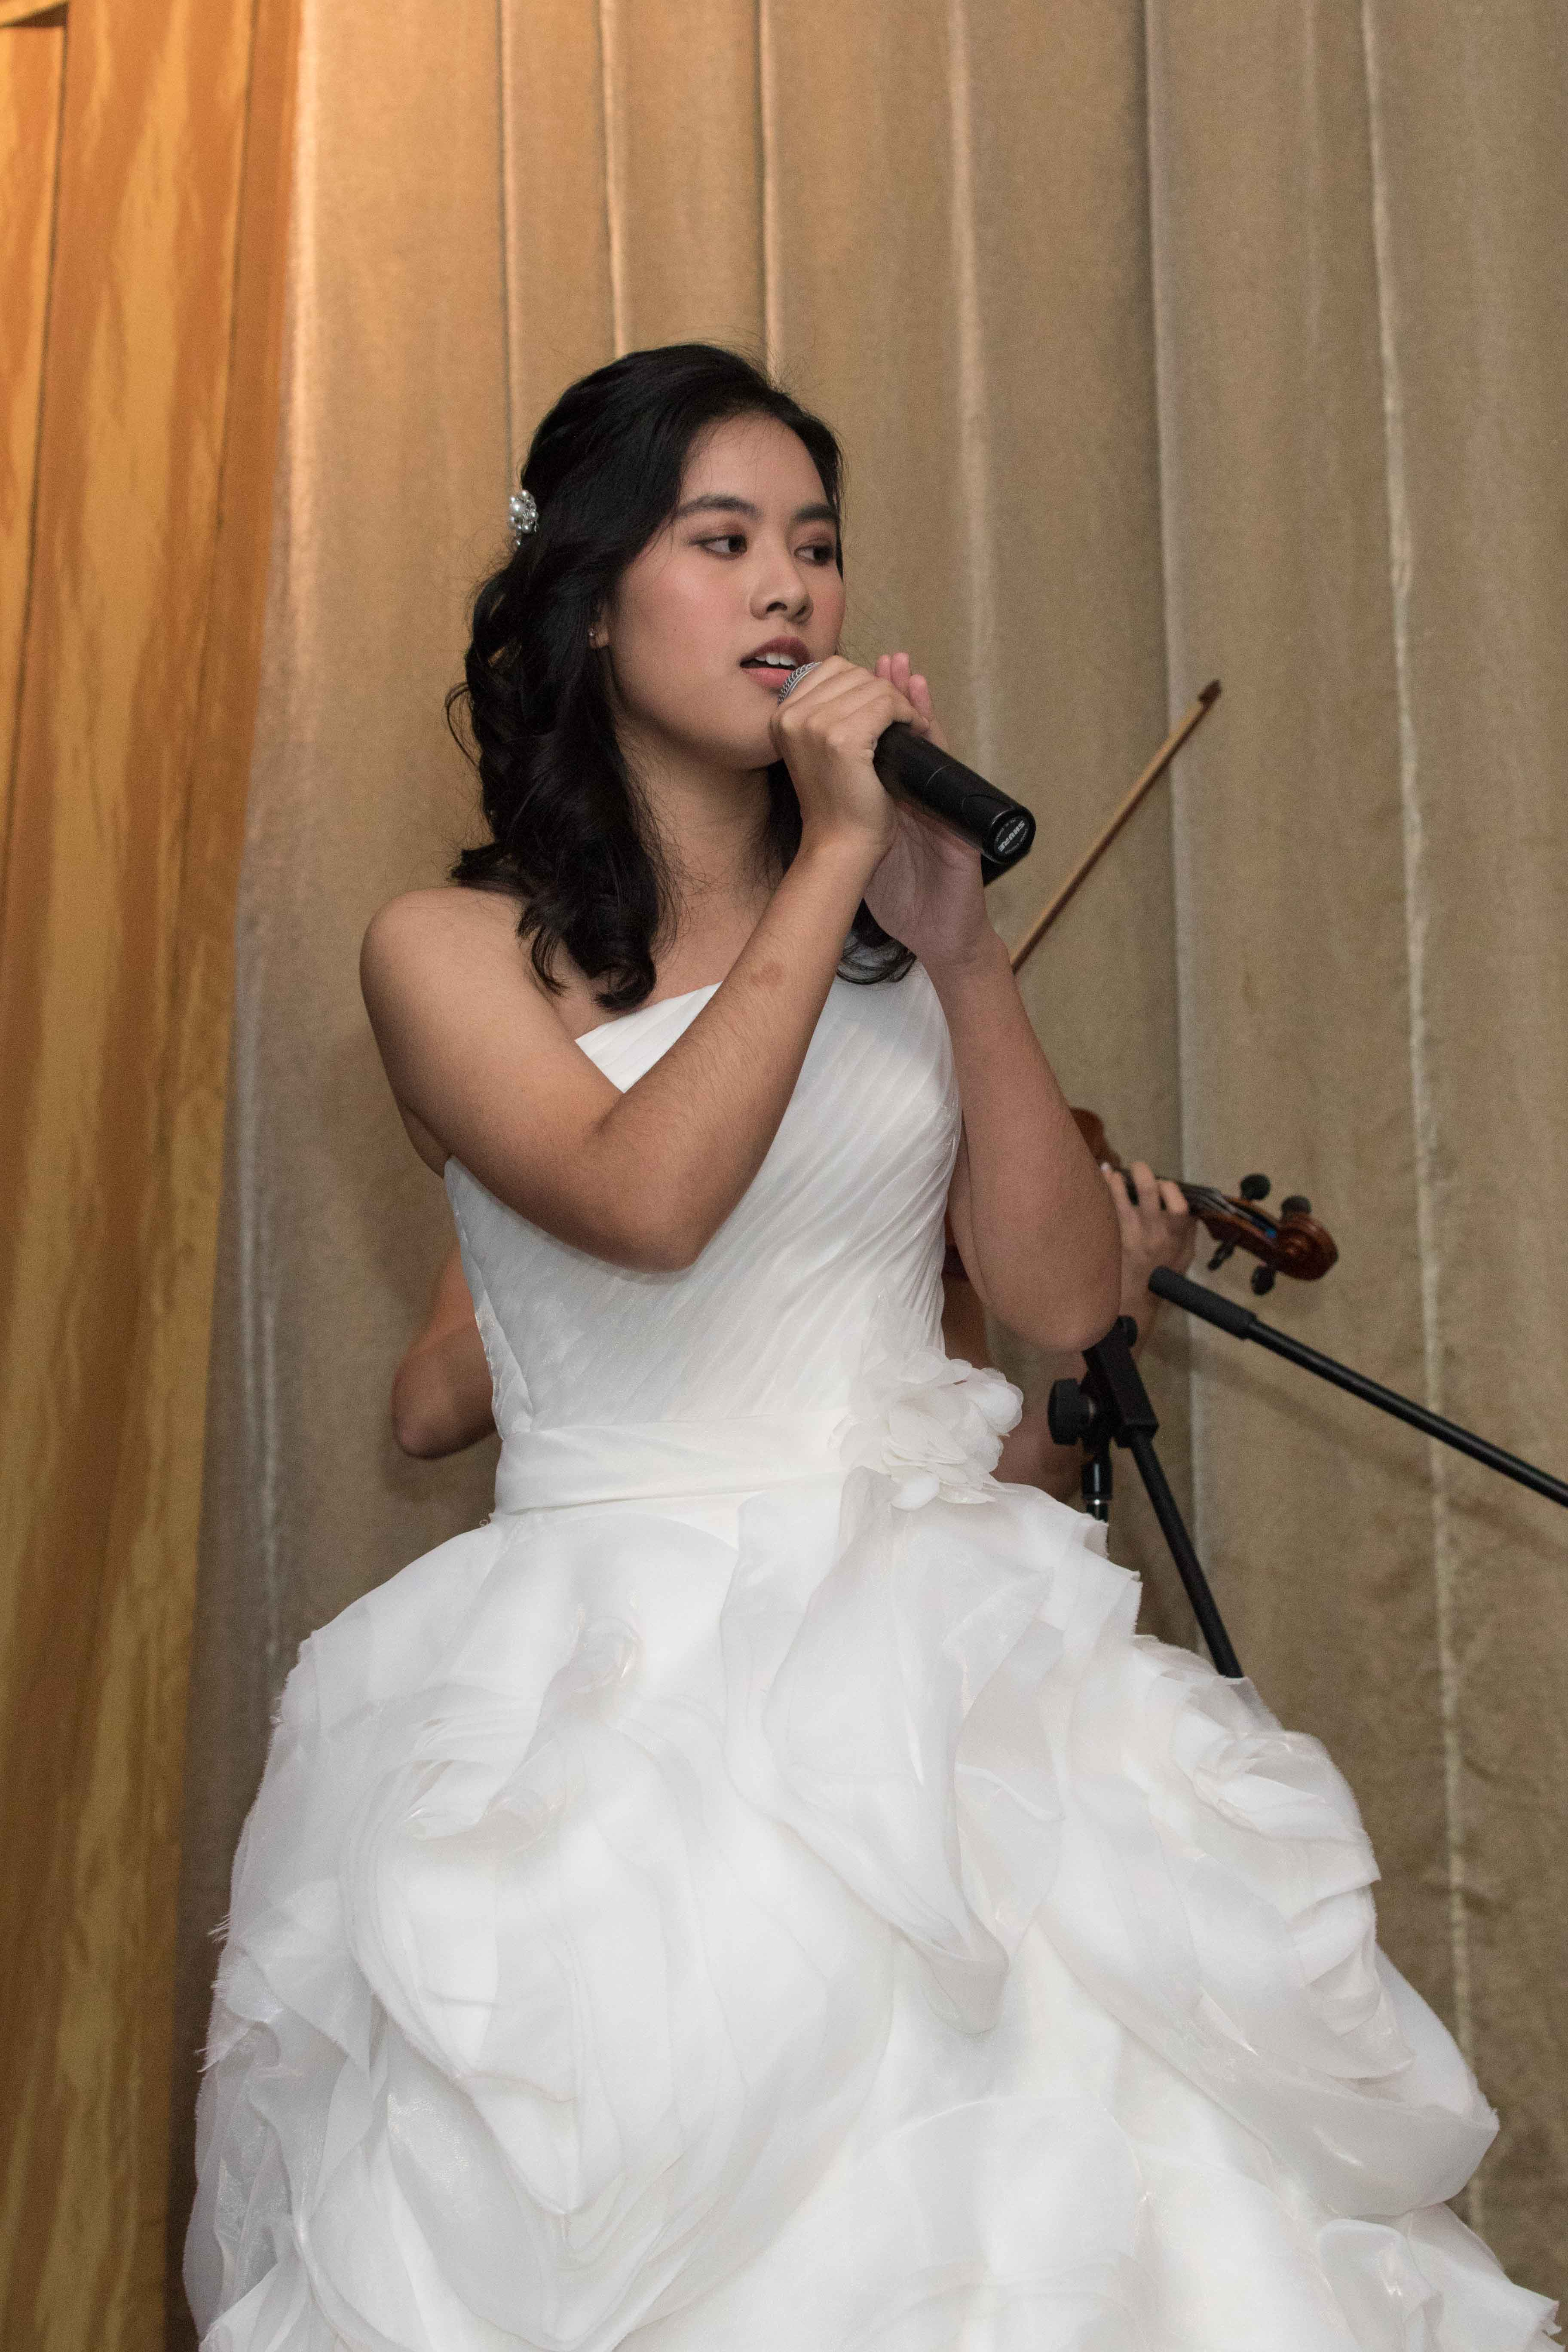 The bride, Isabelle Techawatanasuk, performs a song item ...